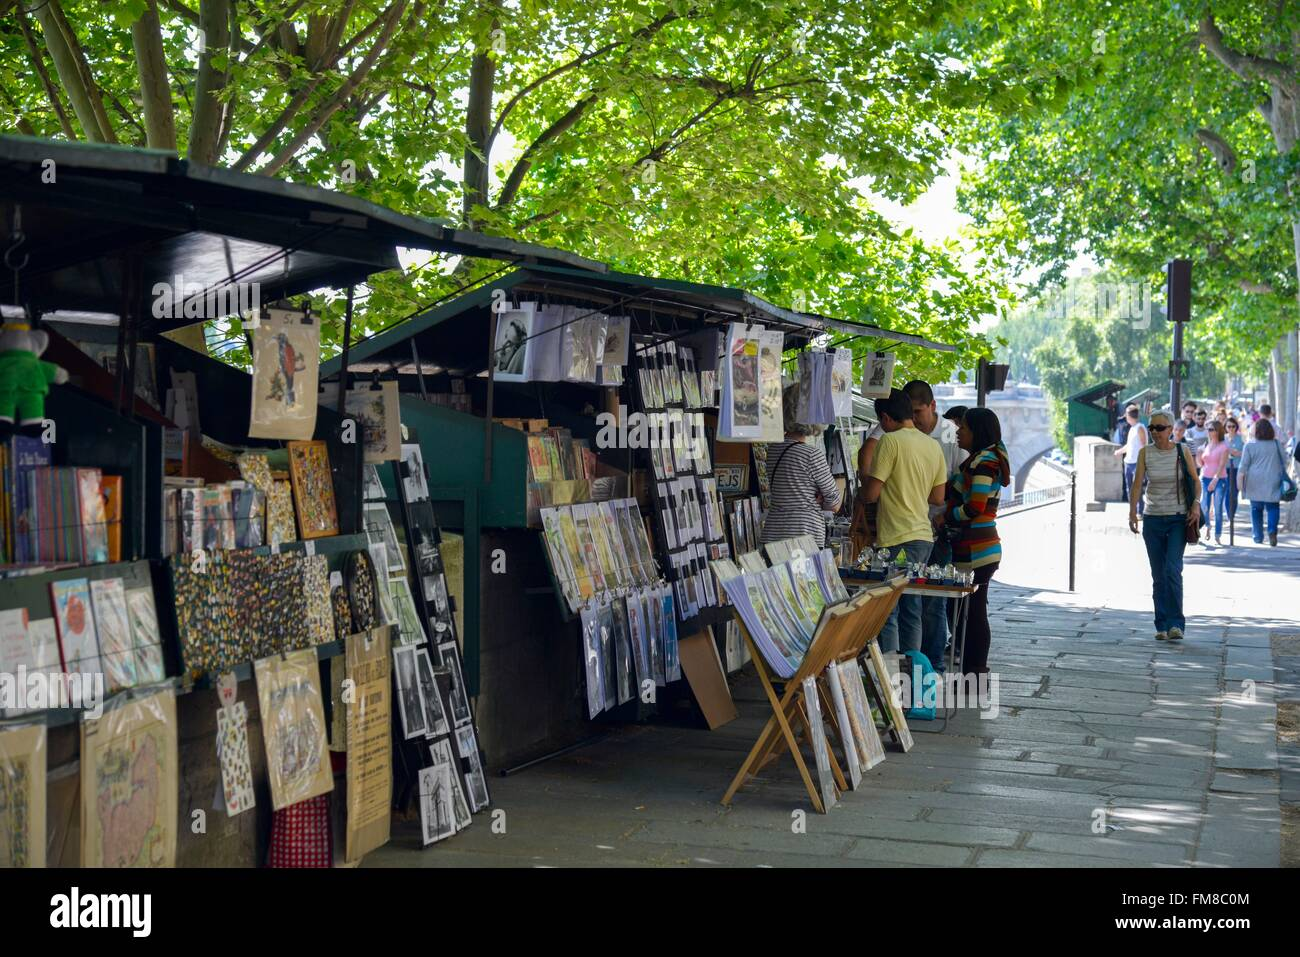 France, Paris, Quay of Gesvres, secondhand booksellers' workshops on a pavement - Stock Image